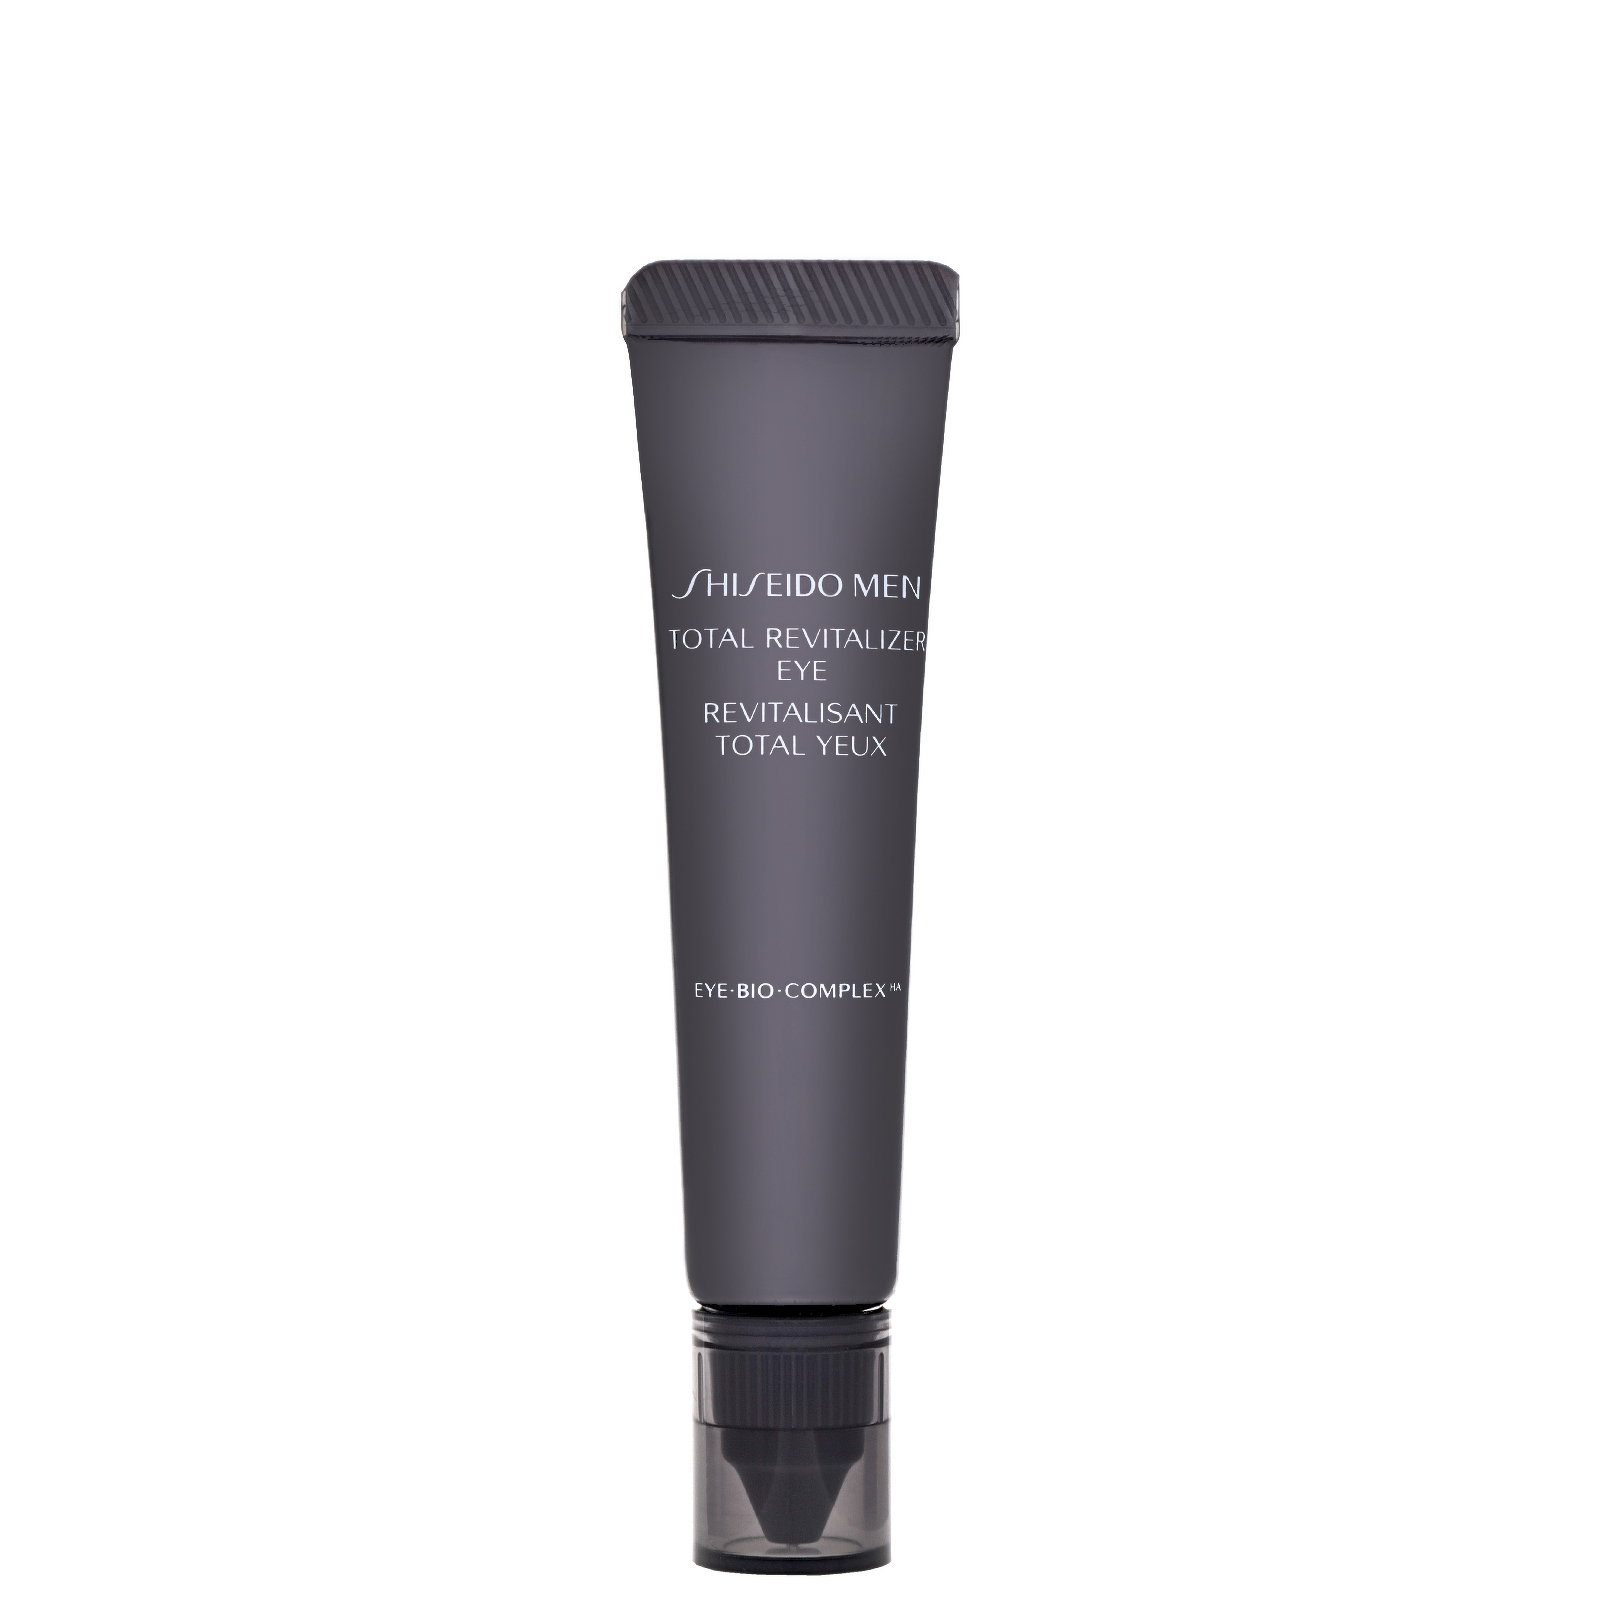 Shiseido Men Total Revitalizer Eye 15ml / 0.53 oz.